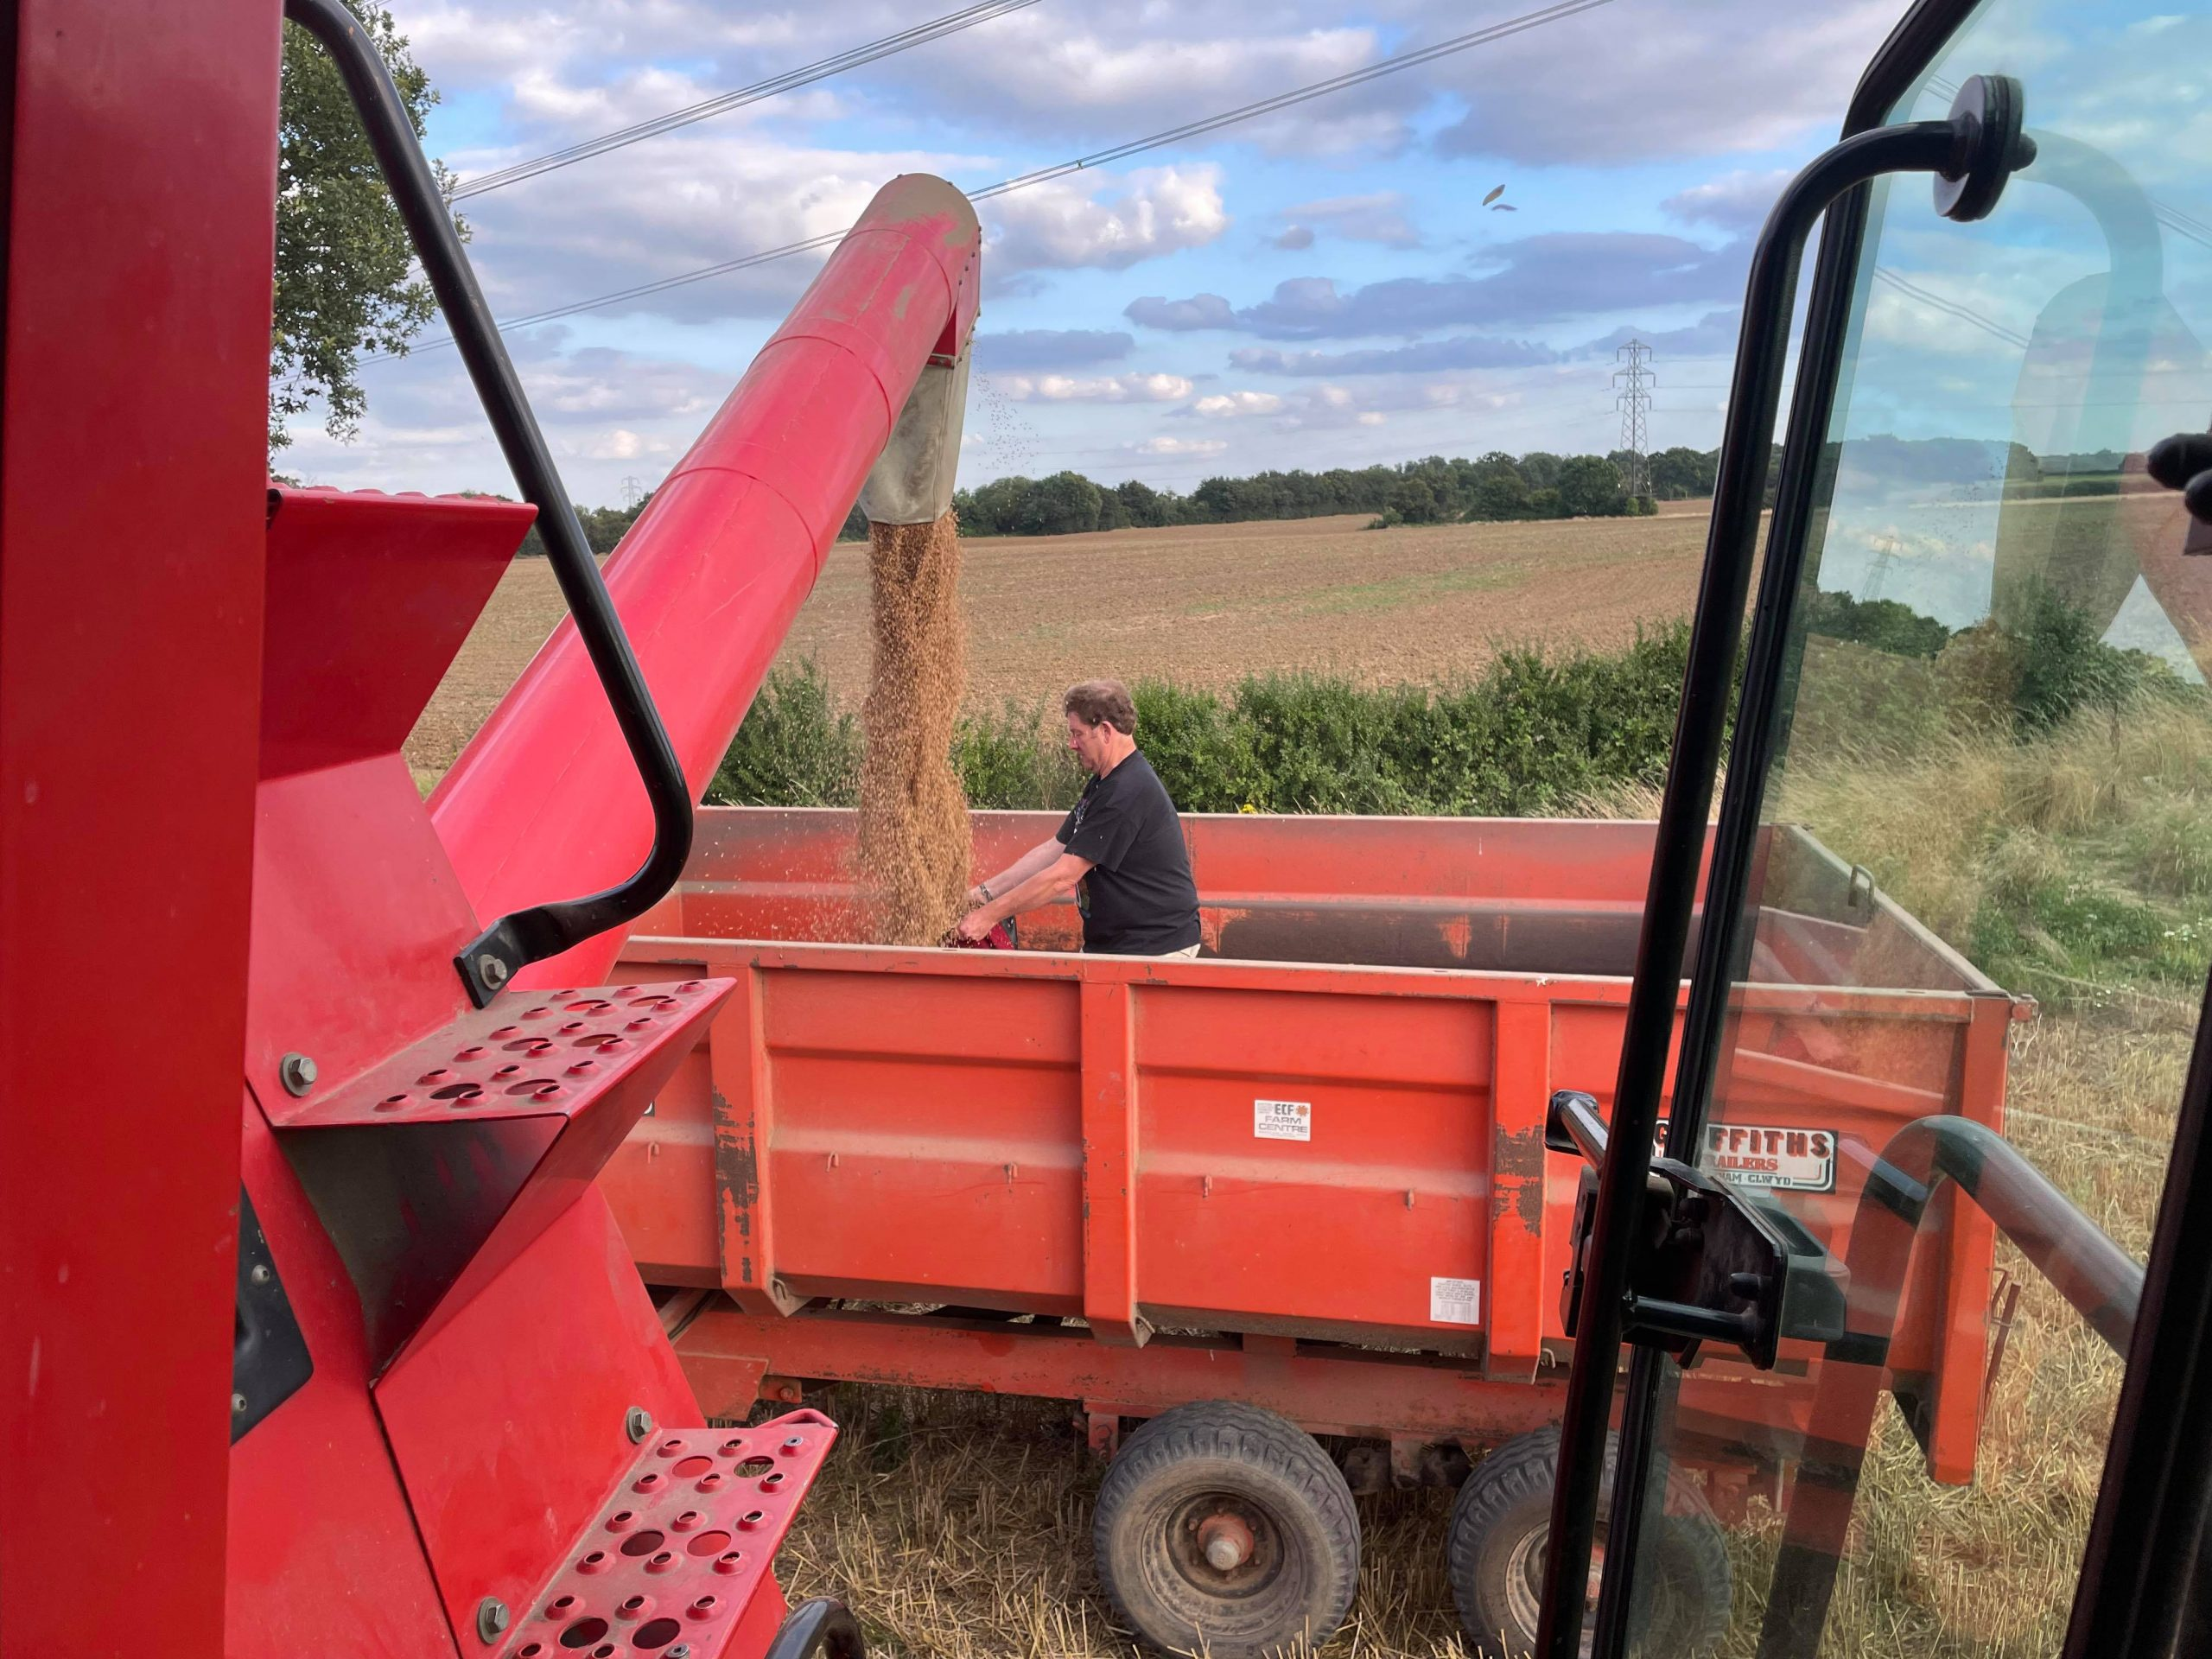 Tim Nash standing in a tractor trailer catching wheat from a combine harvester in his bicycle panier.